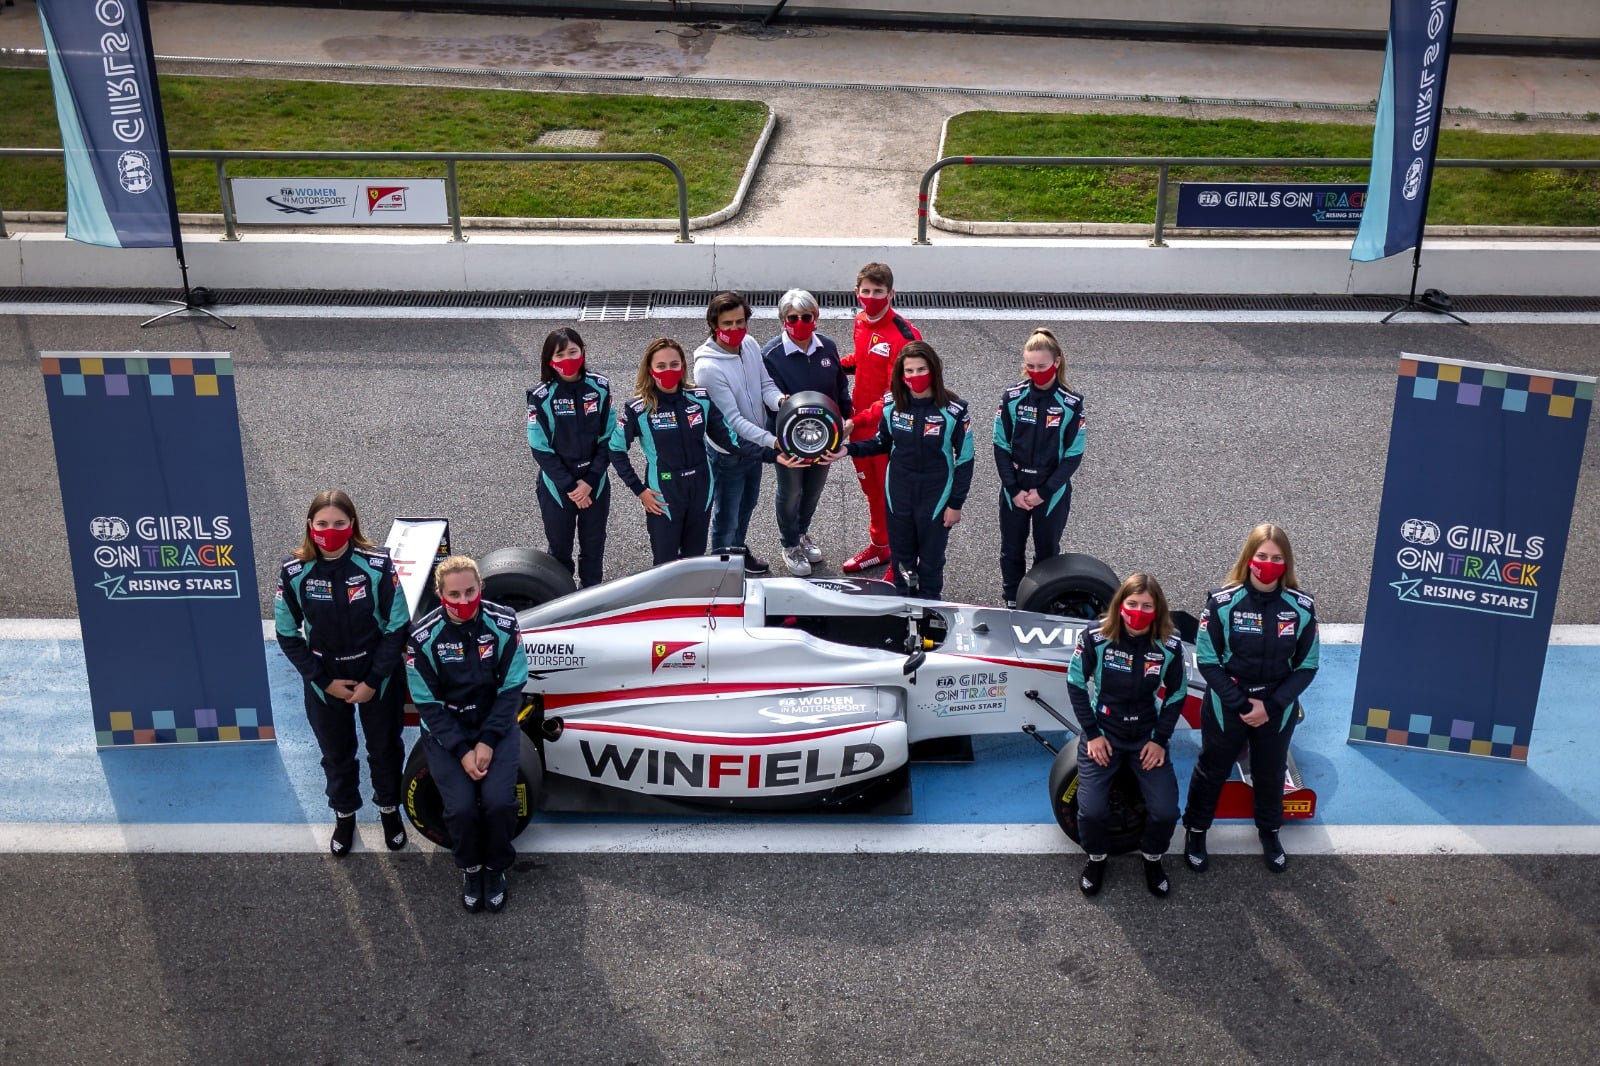 Final stage of the FIA Girls on Track - Rising Stars programme underway in Maranello 10-13 November 2020